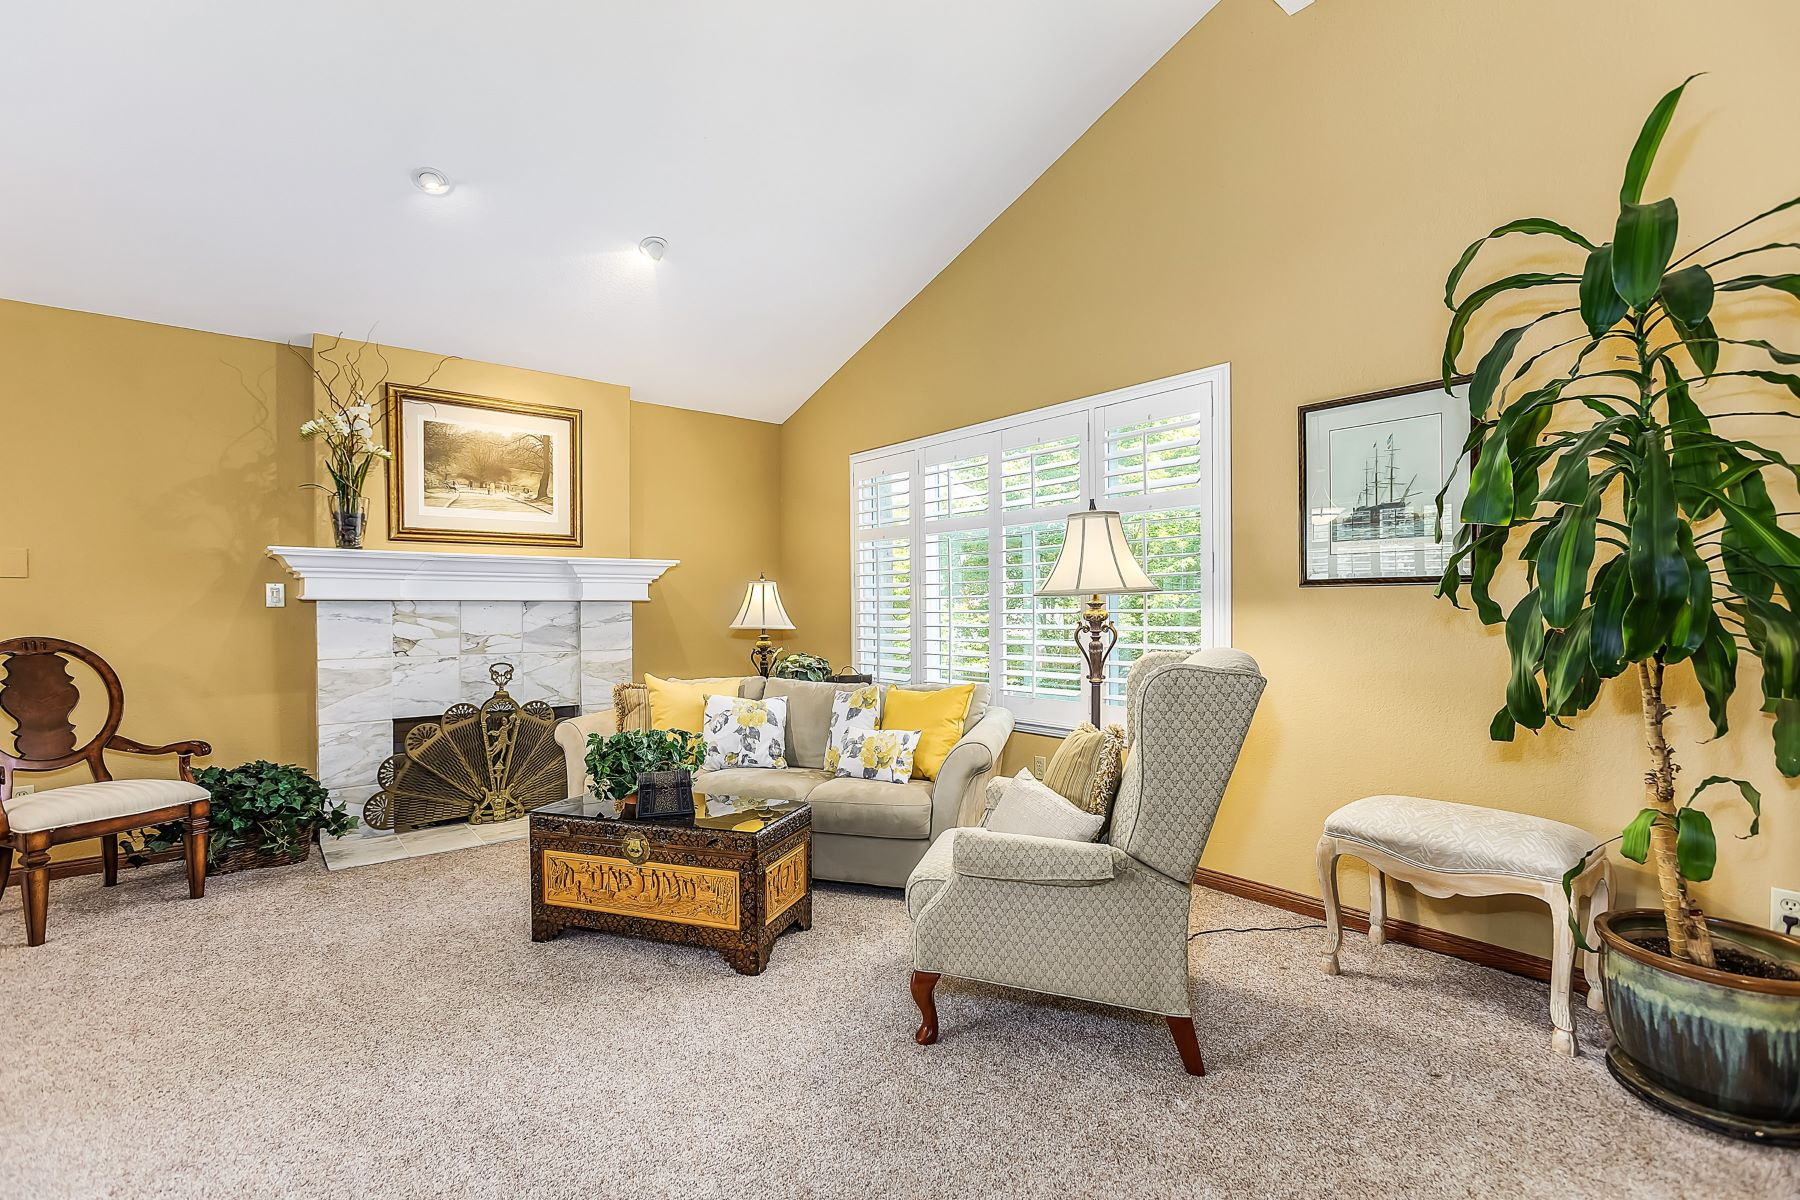 Additional photo for property listing at A Rare Find In Sunrise Place 168 Pebble Place San Ramon, Kalifornien 94583 Vereinigte Staaten